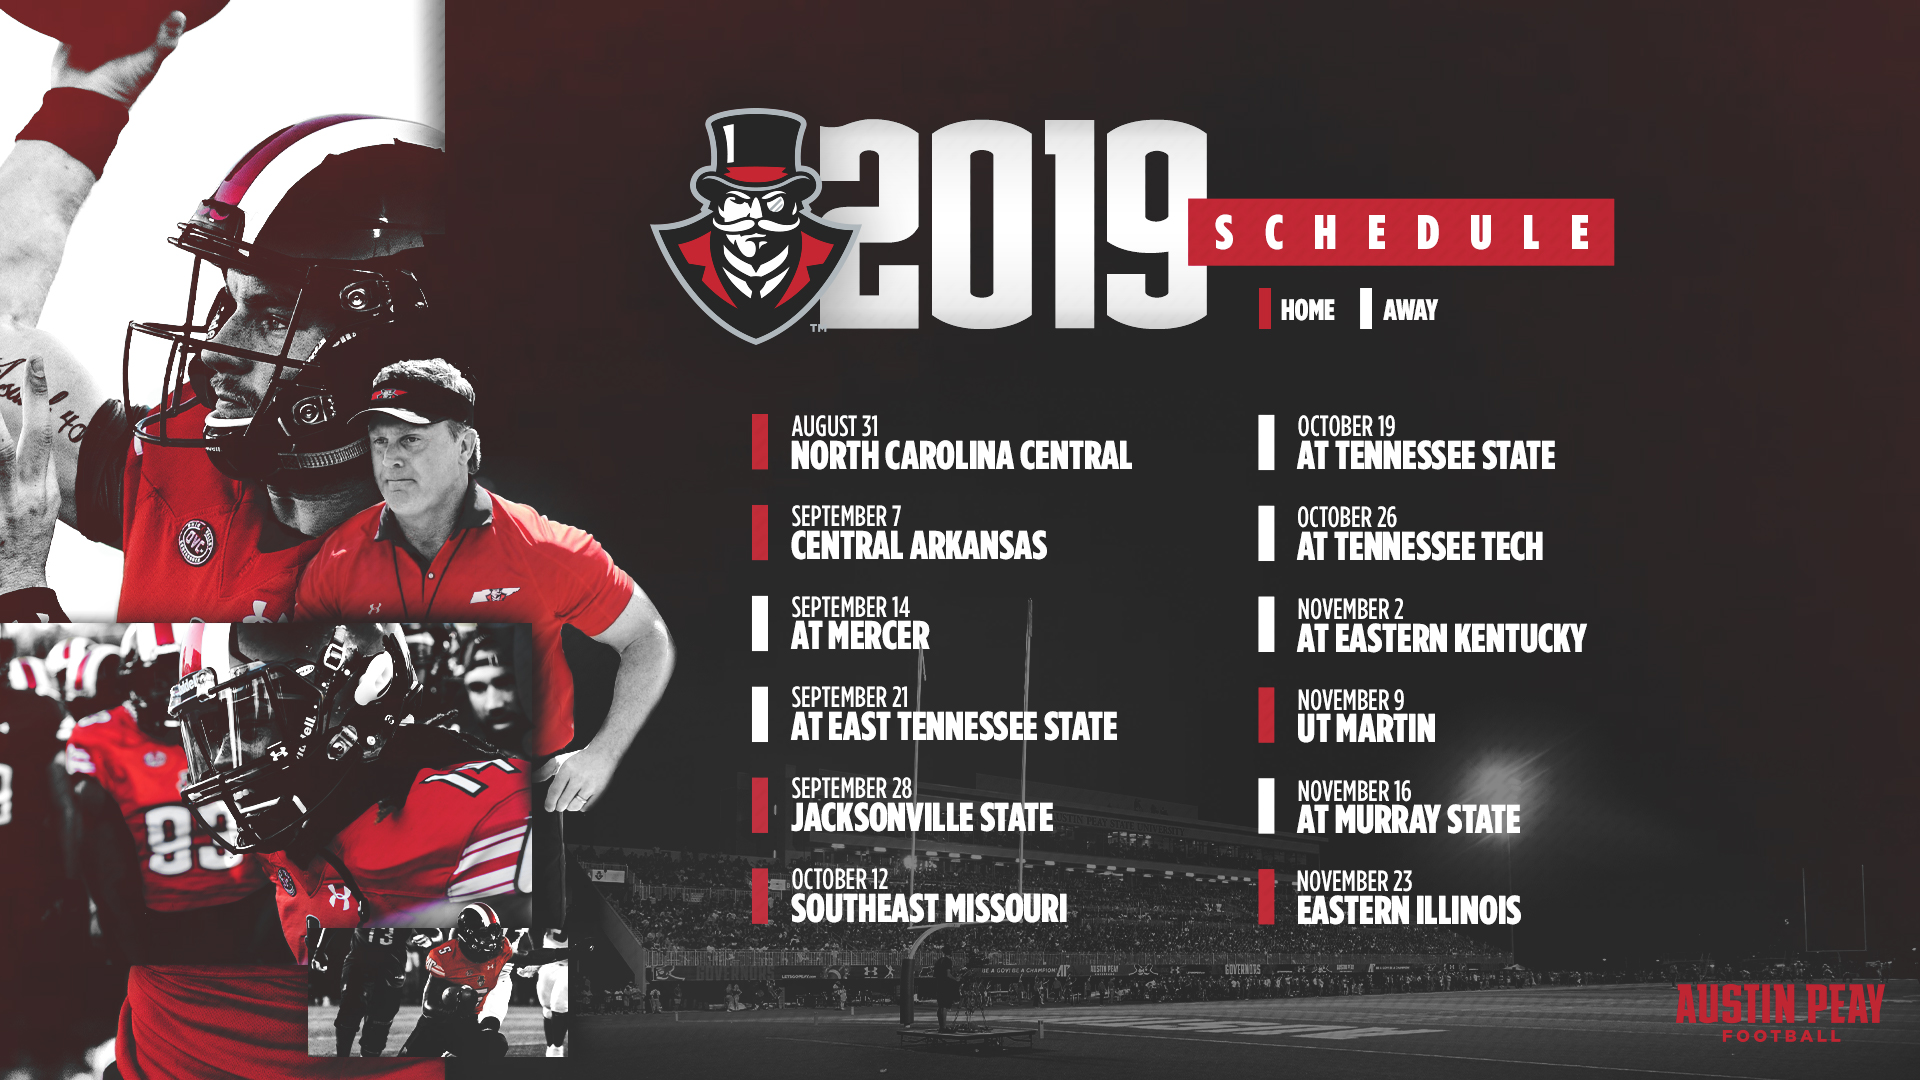 Austin Peay Football Schedule 2020 Austin Peay 2019 football schedule features six home games; three